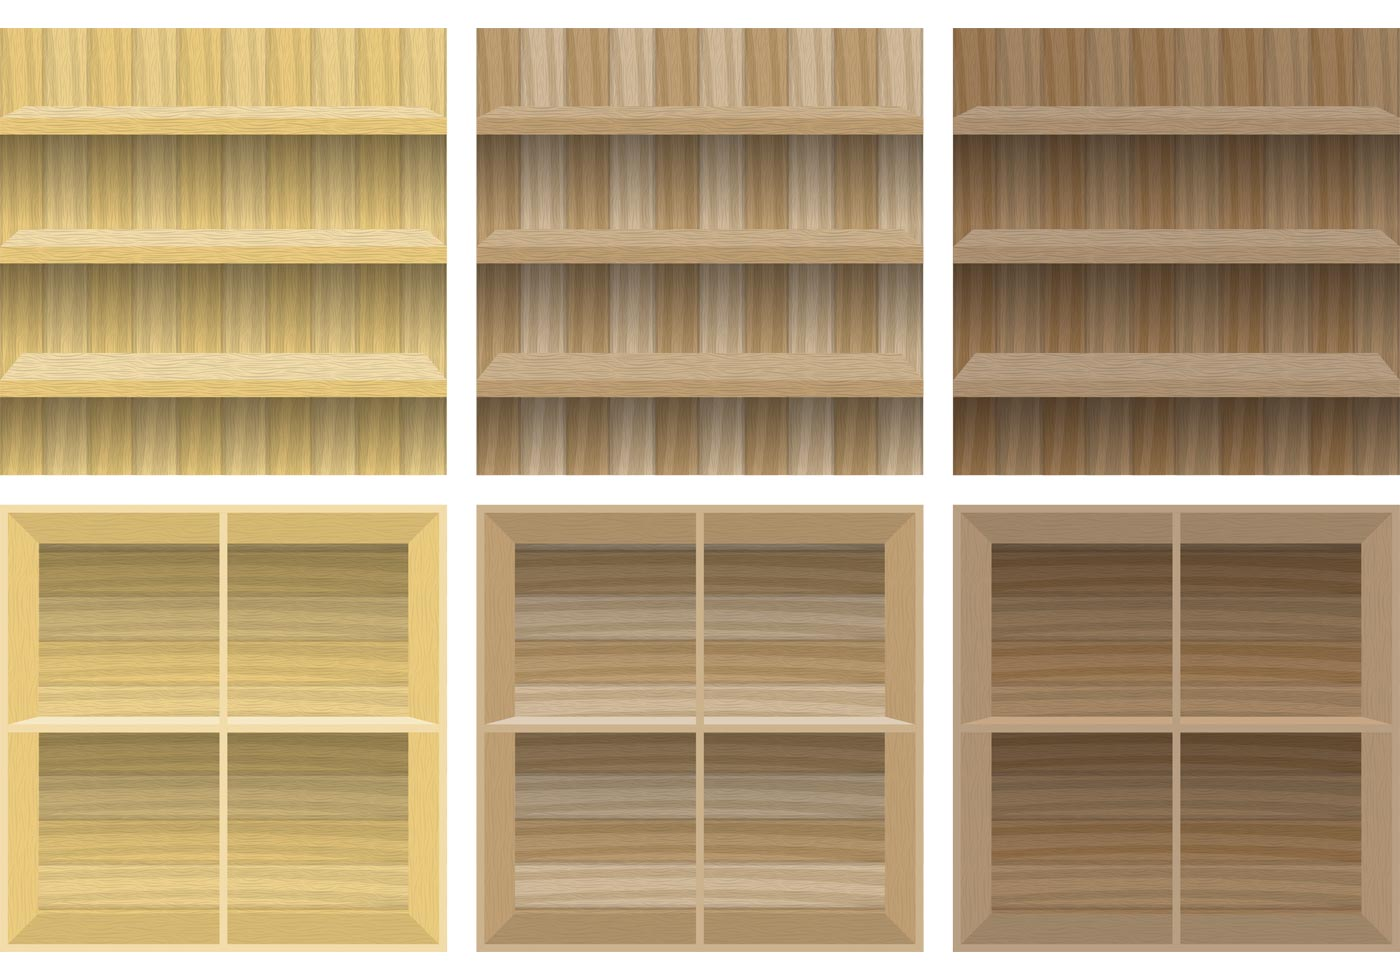 Wooden Shelves  Download Free Vector Art Stock Graphics  Images